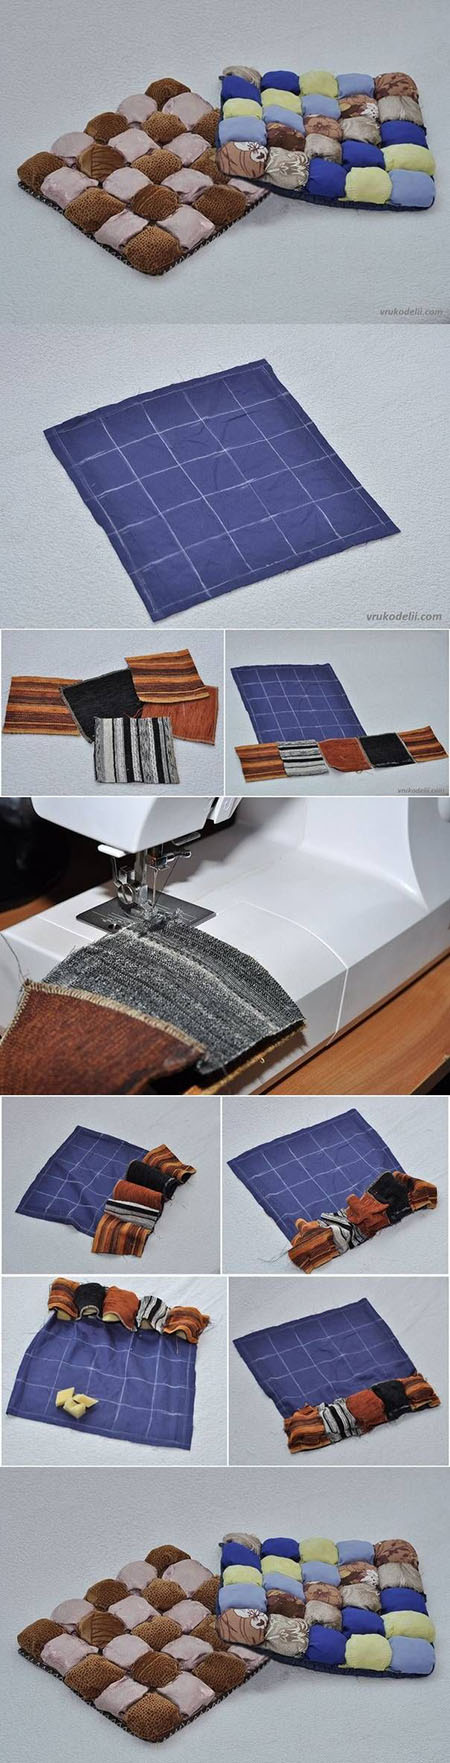 1 DIY Chair Soft Cushion DIY Projects 41bb52c45b